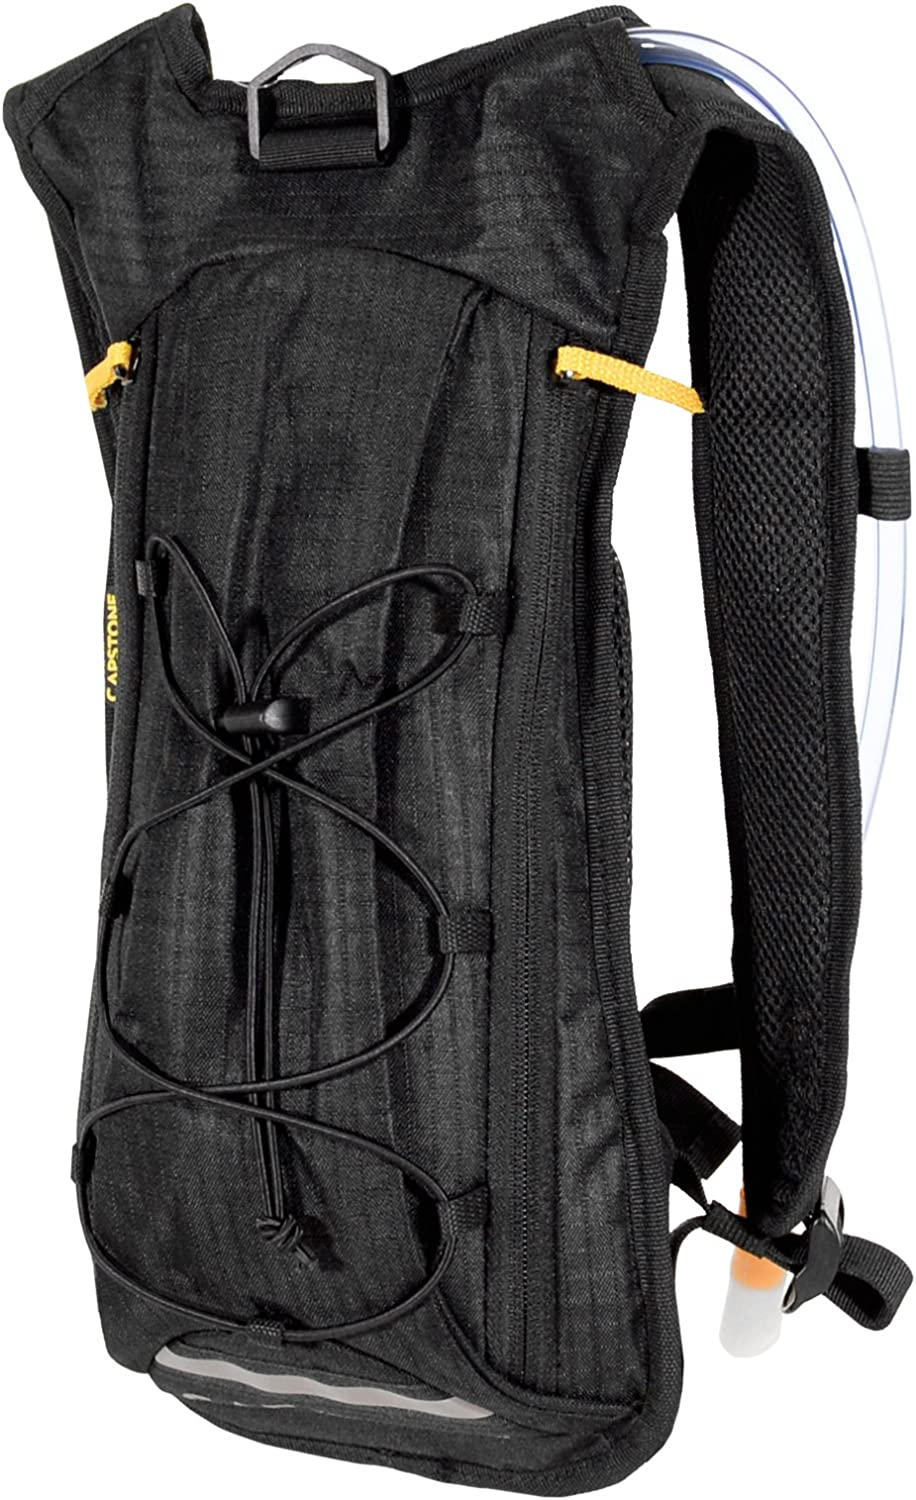 Capstone Hydration Pack Daily bargain High material sale Small